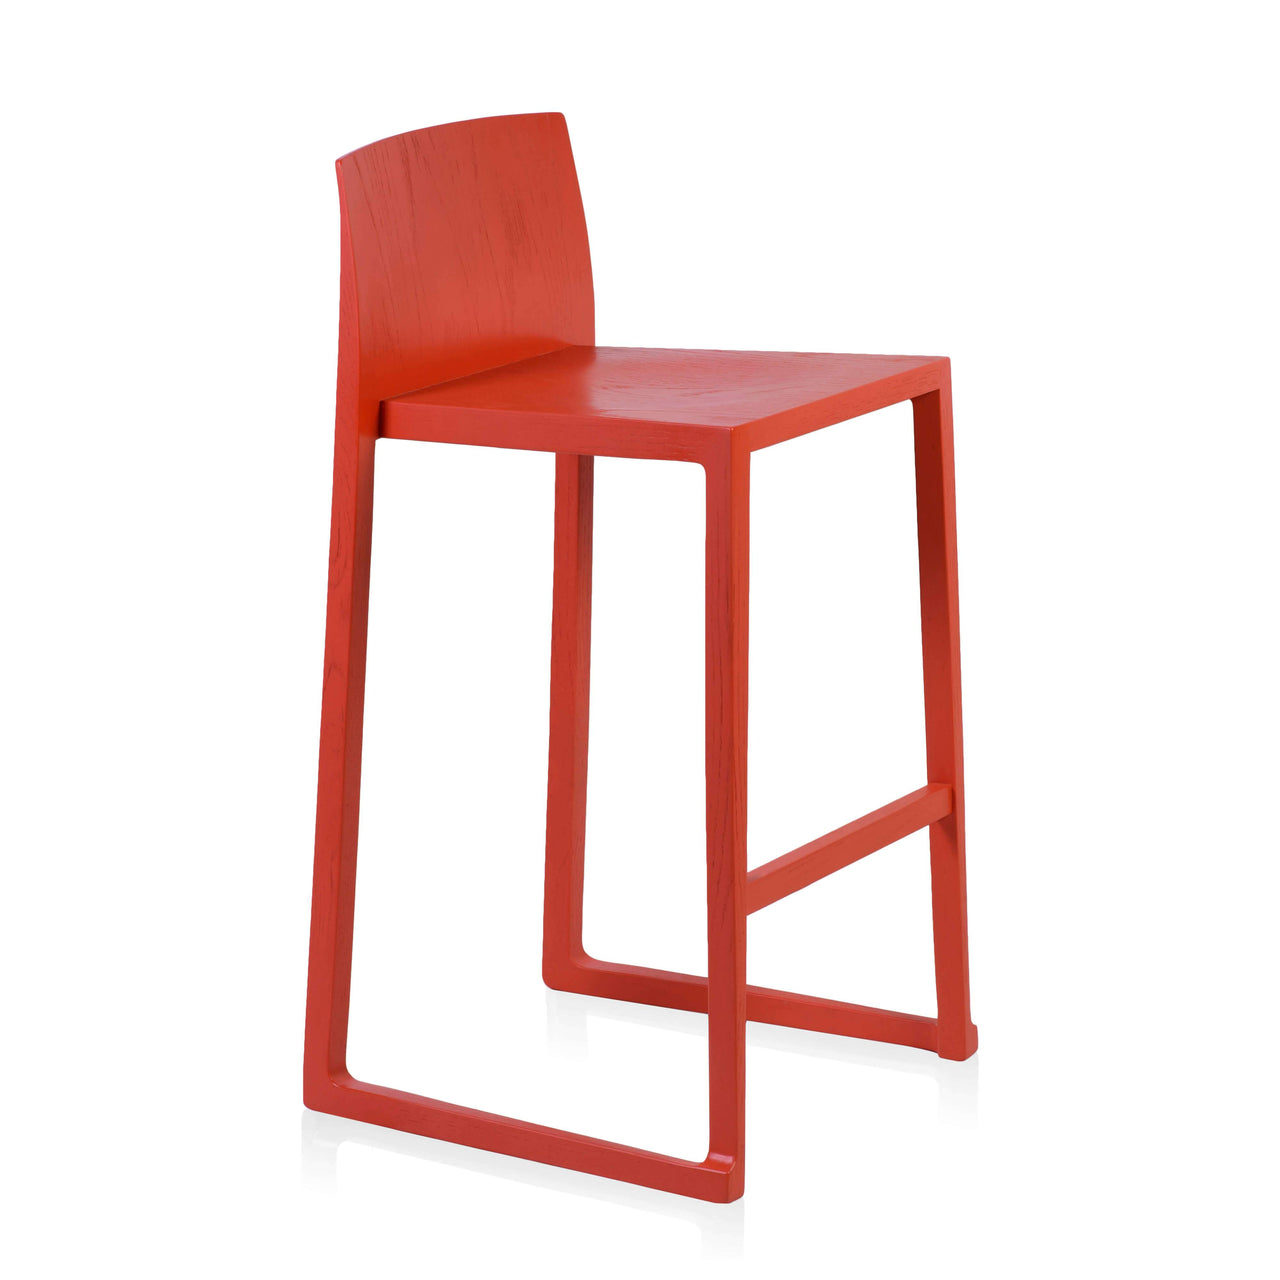 Hanna Bar + Counter Stool: Painted